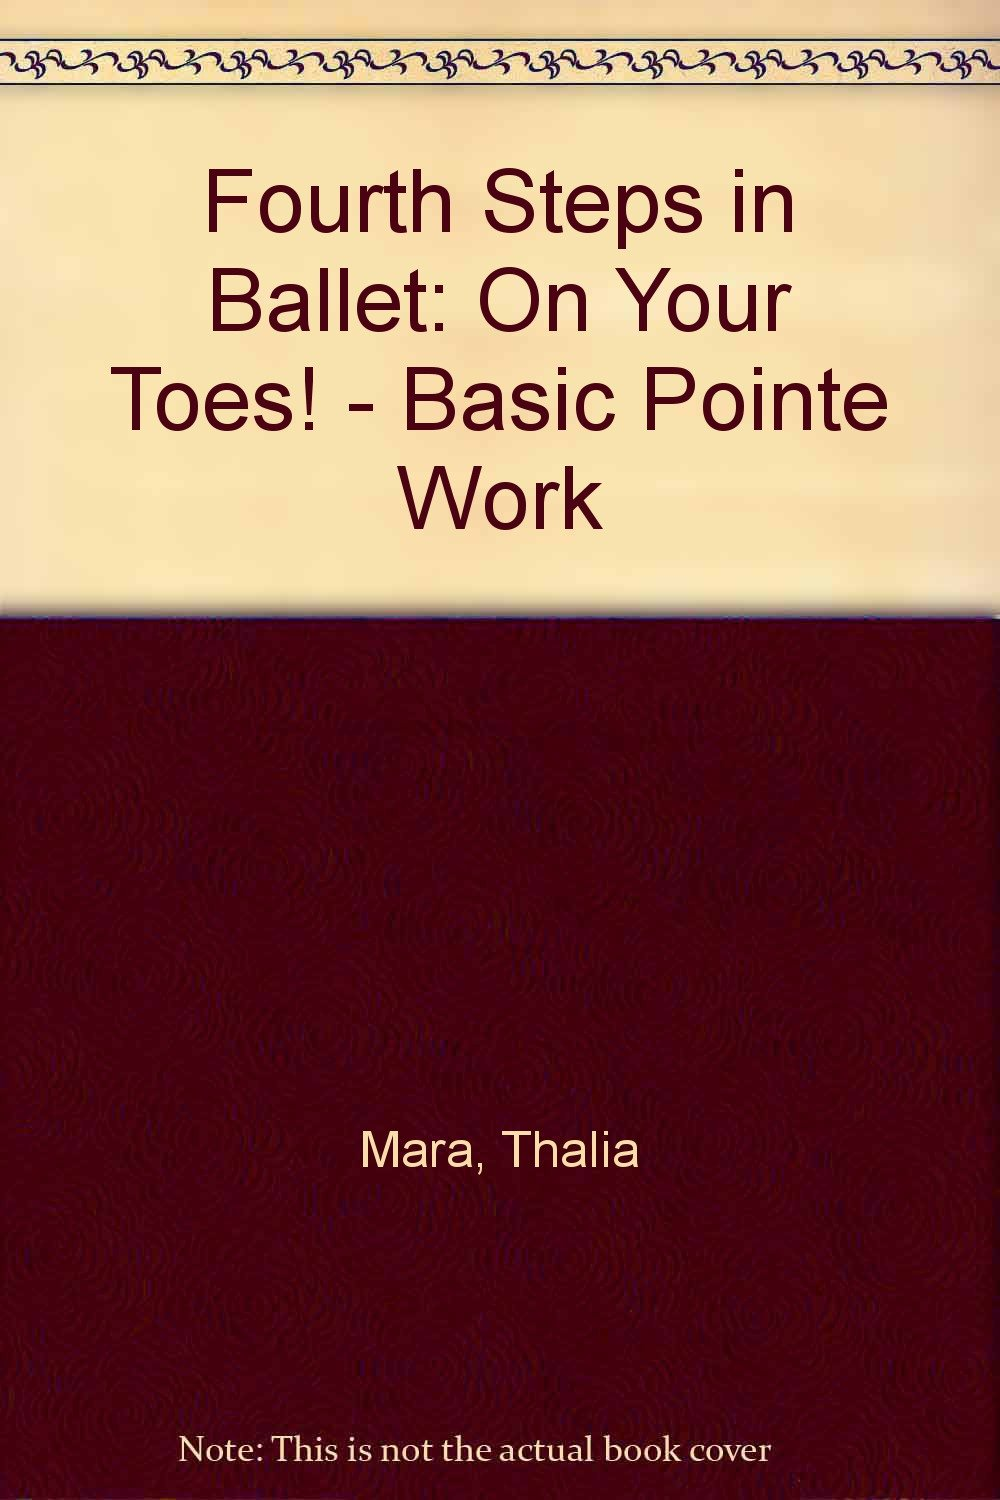 Fourth Steps in Ballet: On Your Toes! Basic Pointe Work